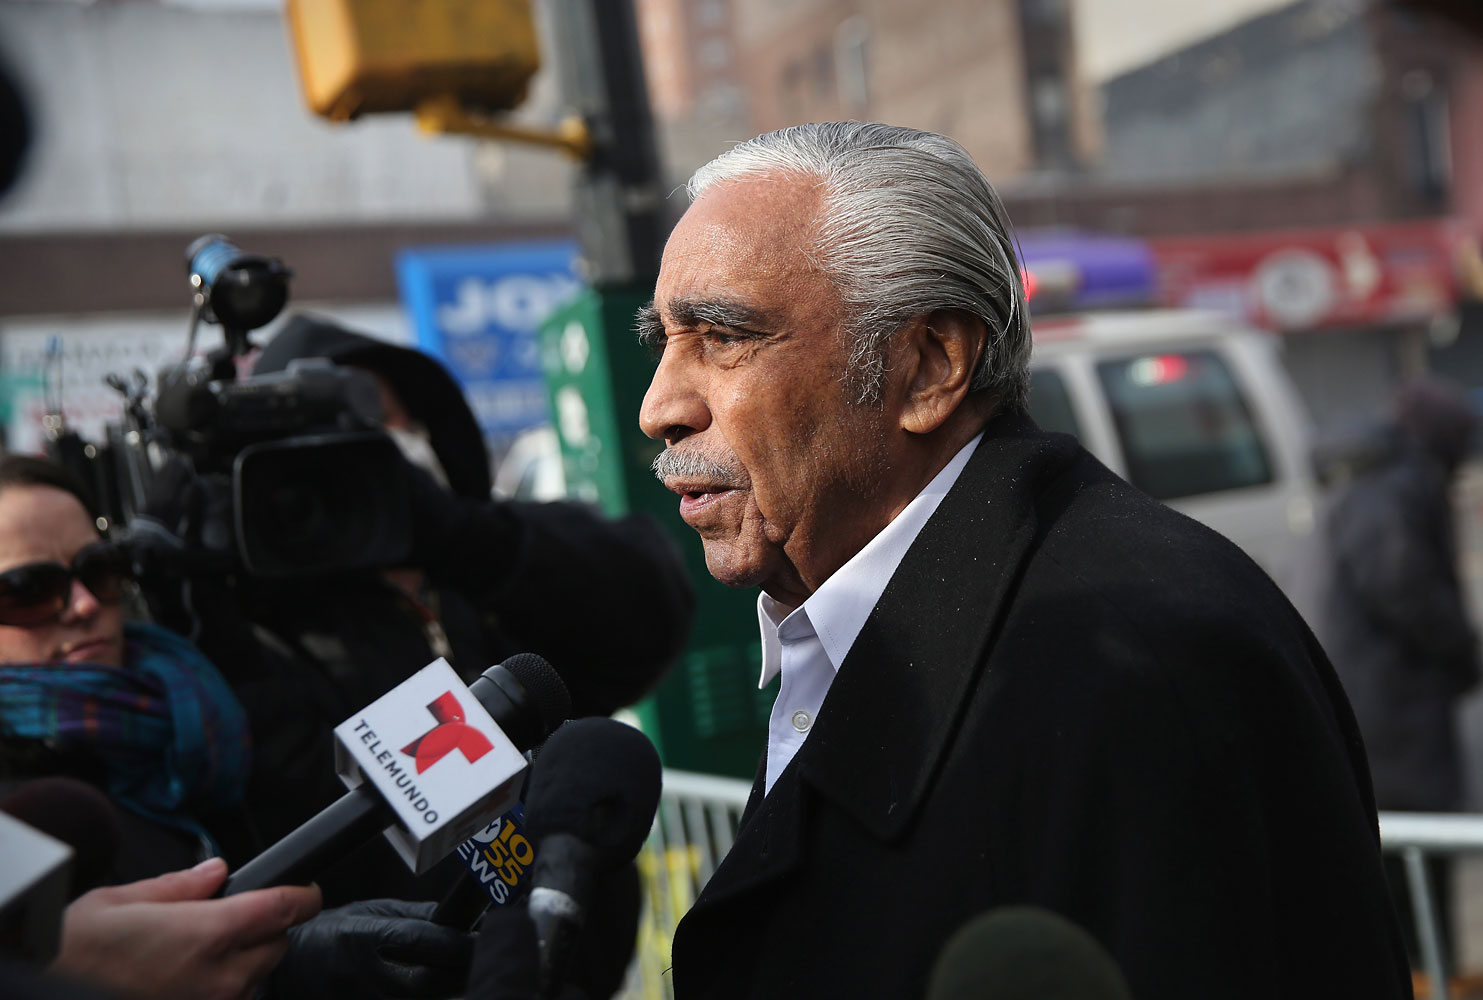 U.S. Rep. Charles Rangel (D-NY), speaks to the media near the smoking site of an explosion in East Harlem on March 13, 2014 in New York City.